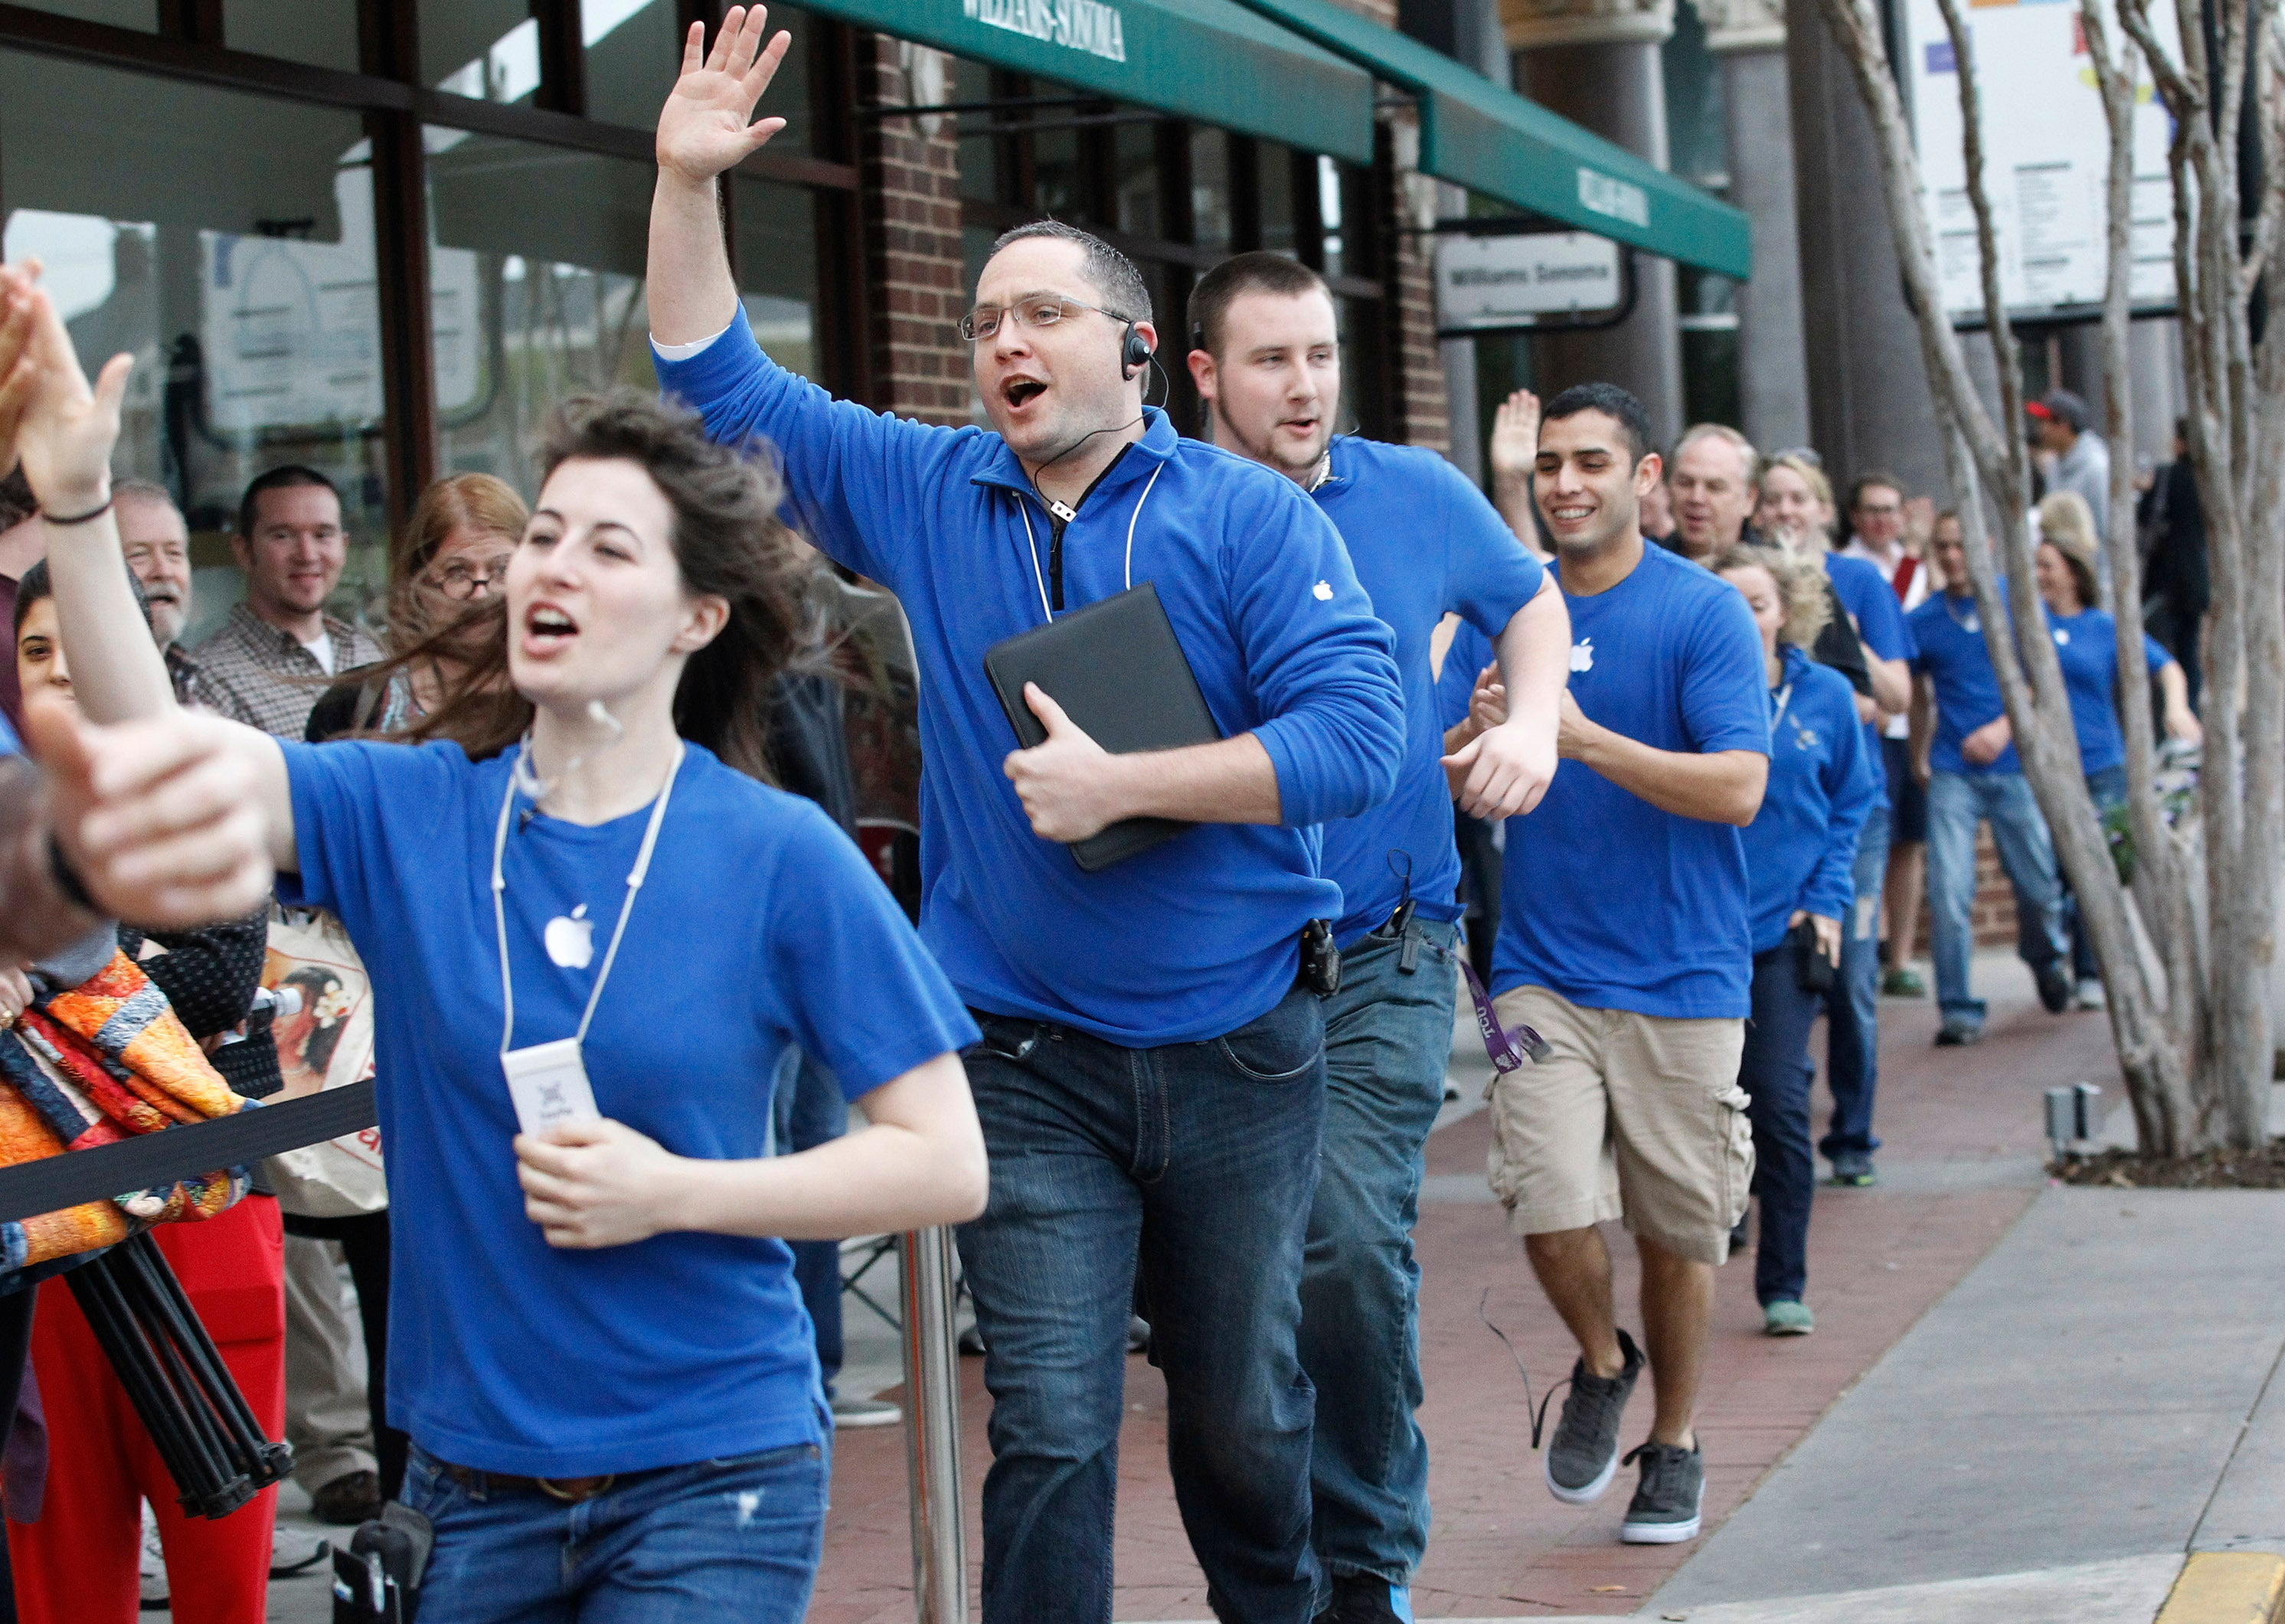 Apple Store Employees with Blue Uniforms